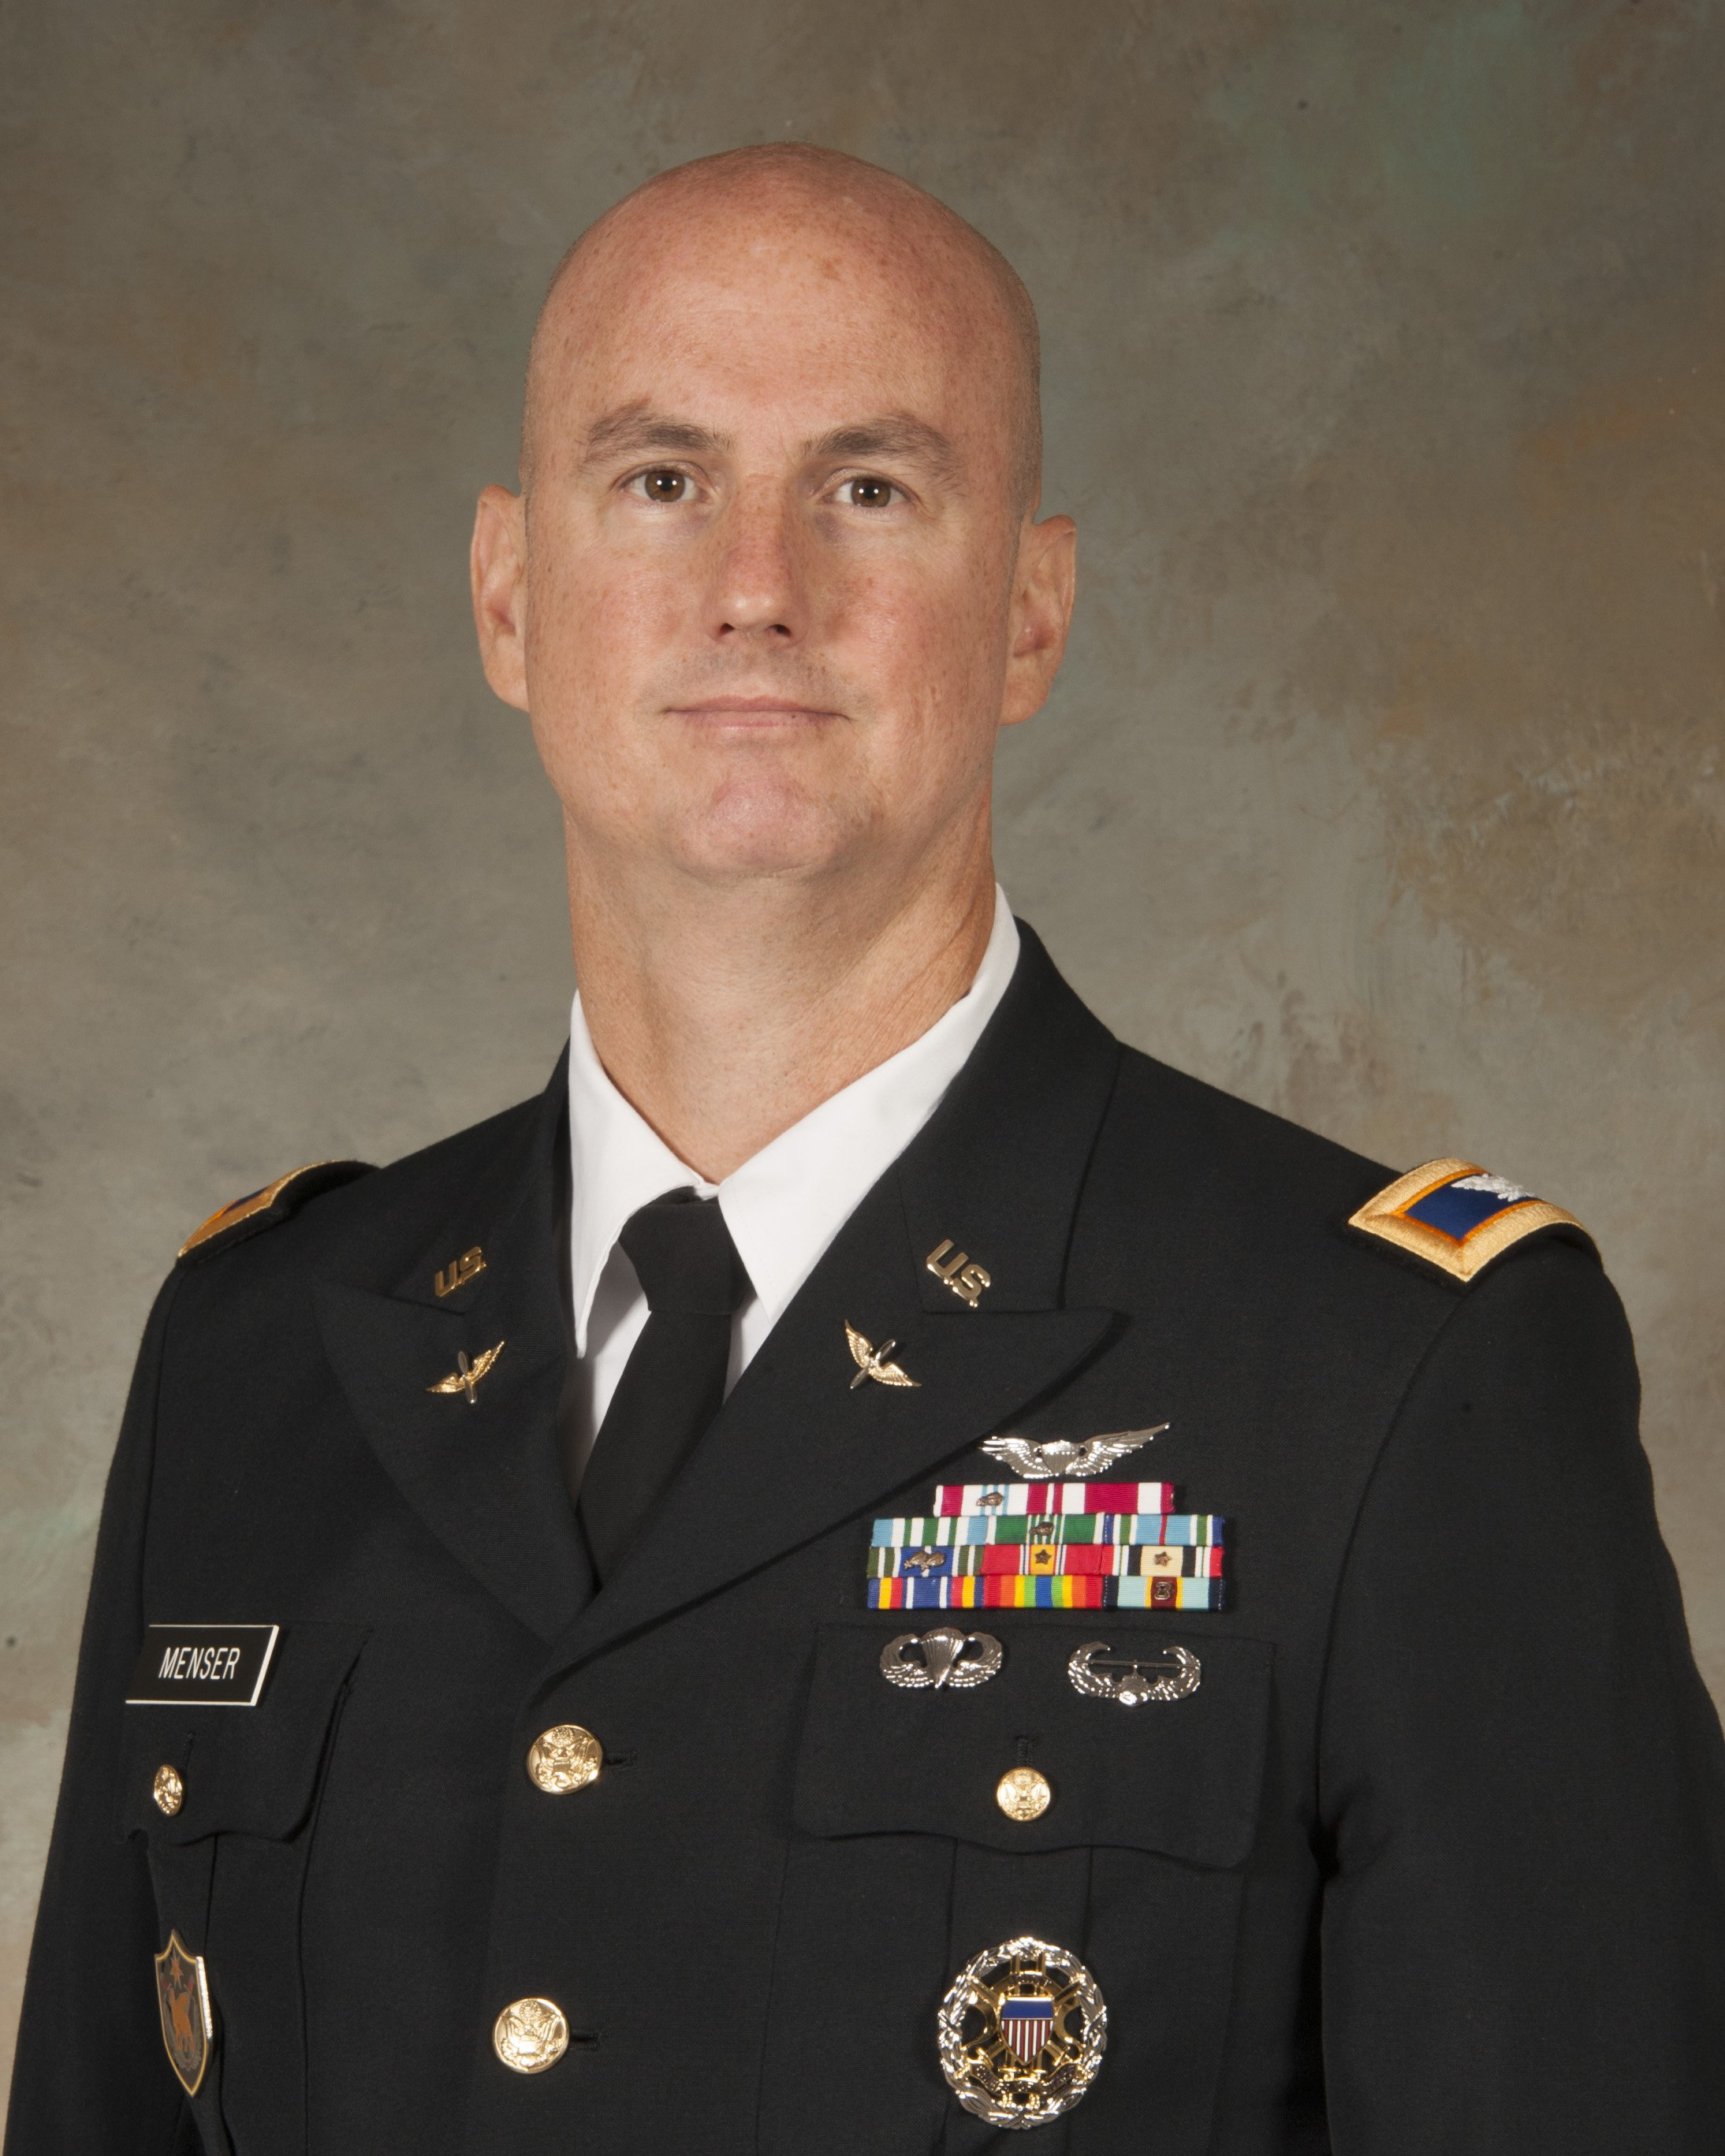 Colonel (COL) David C Menser